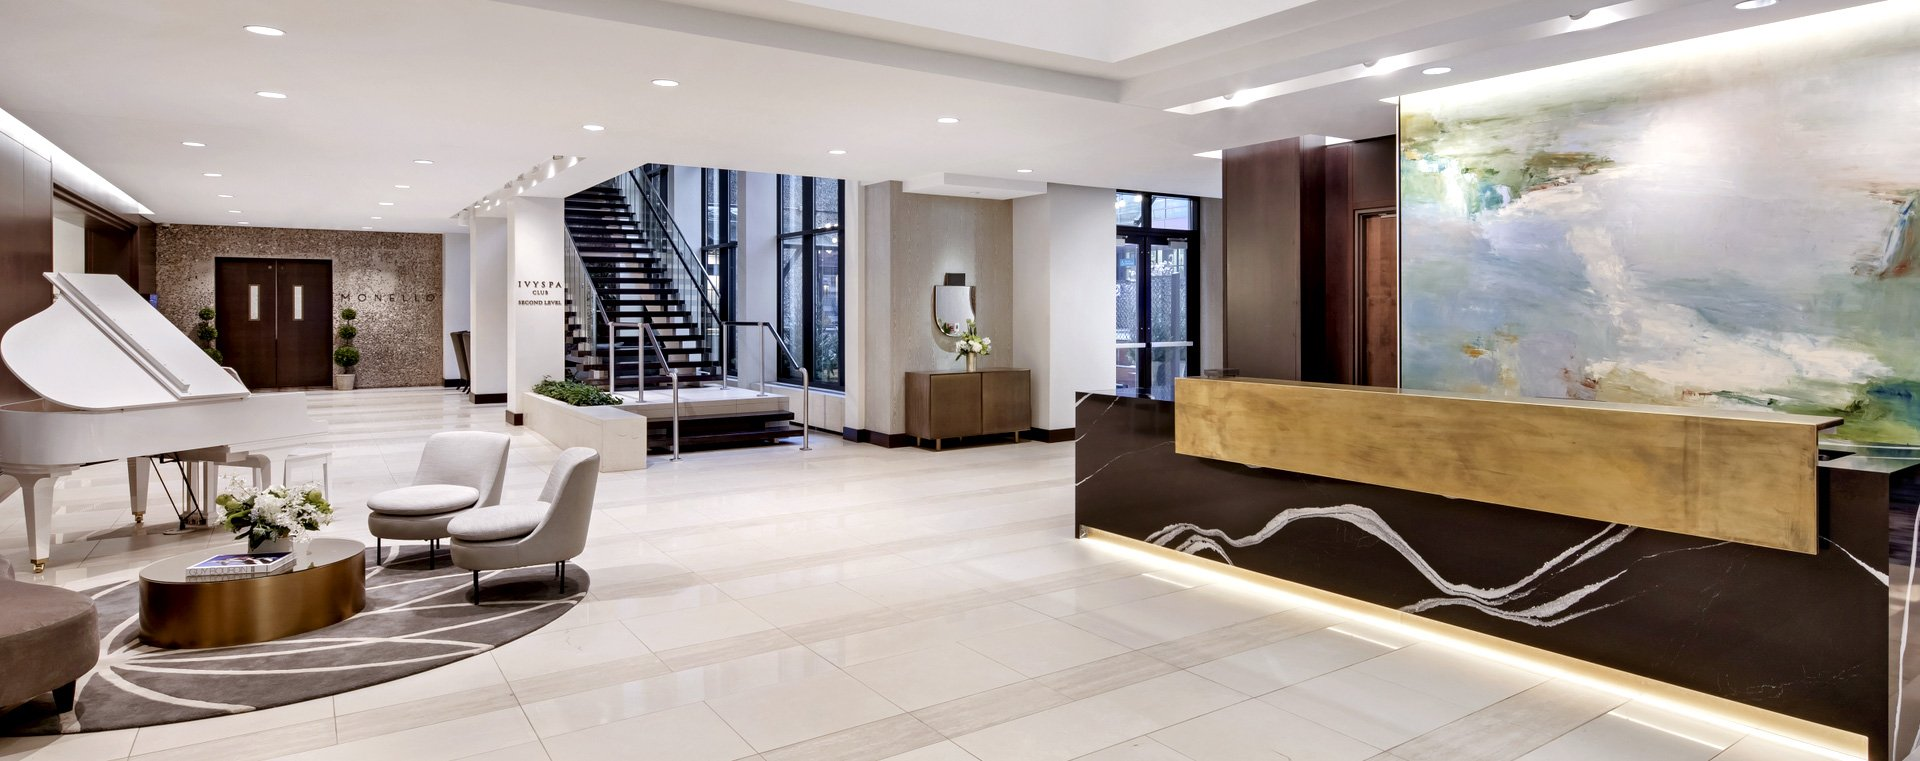 Hotel Ivy, A Luxury Collection Hotel, Minneapolis Accessiblity